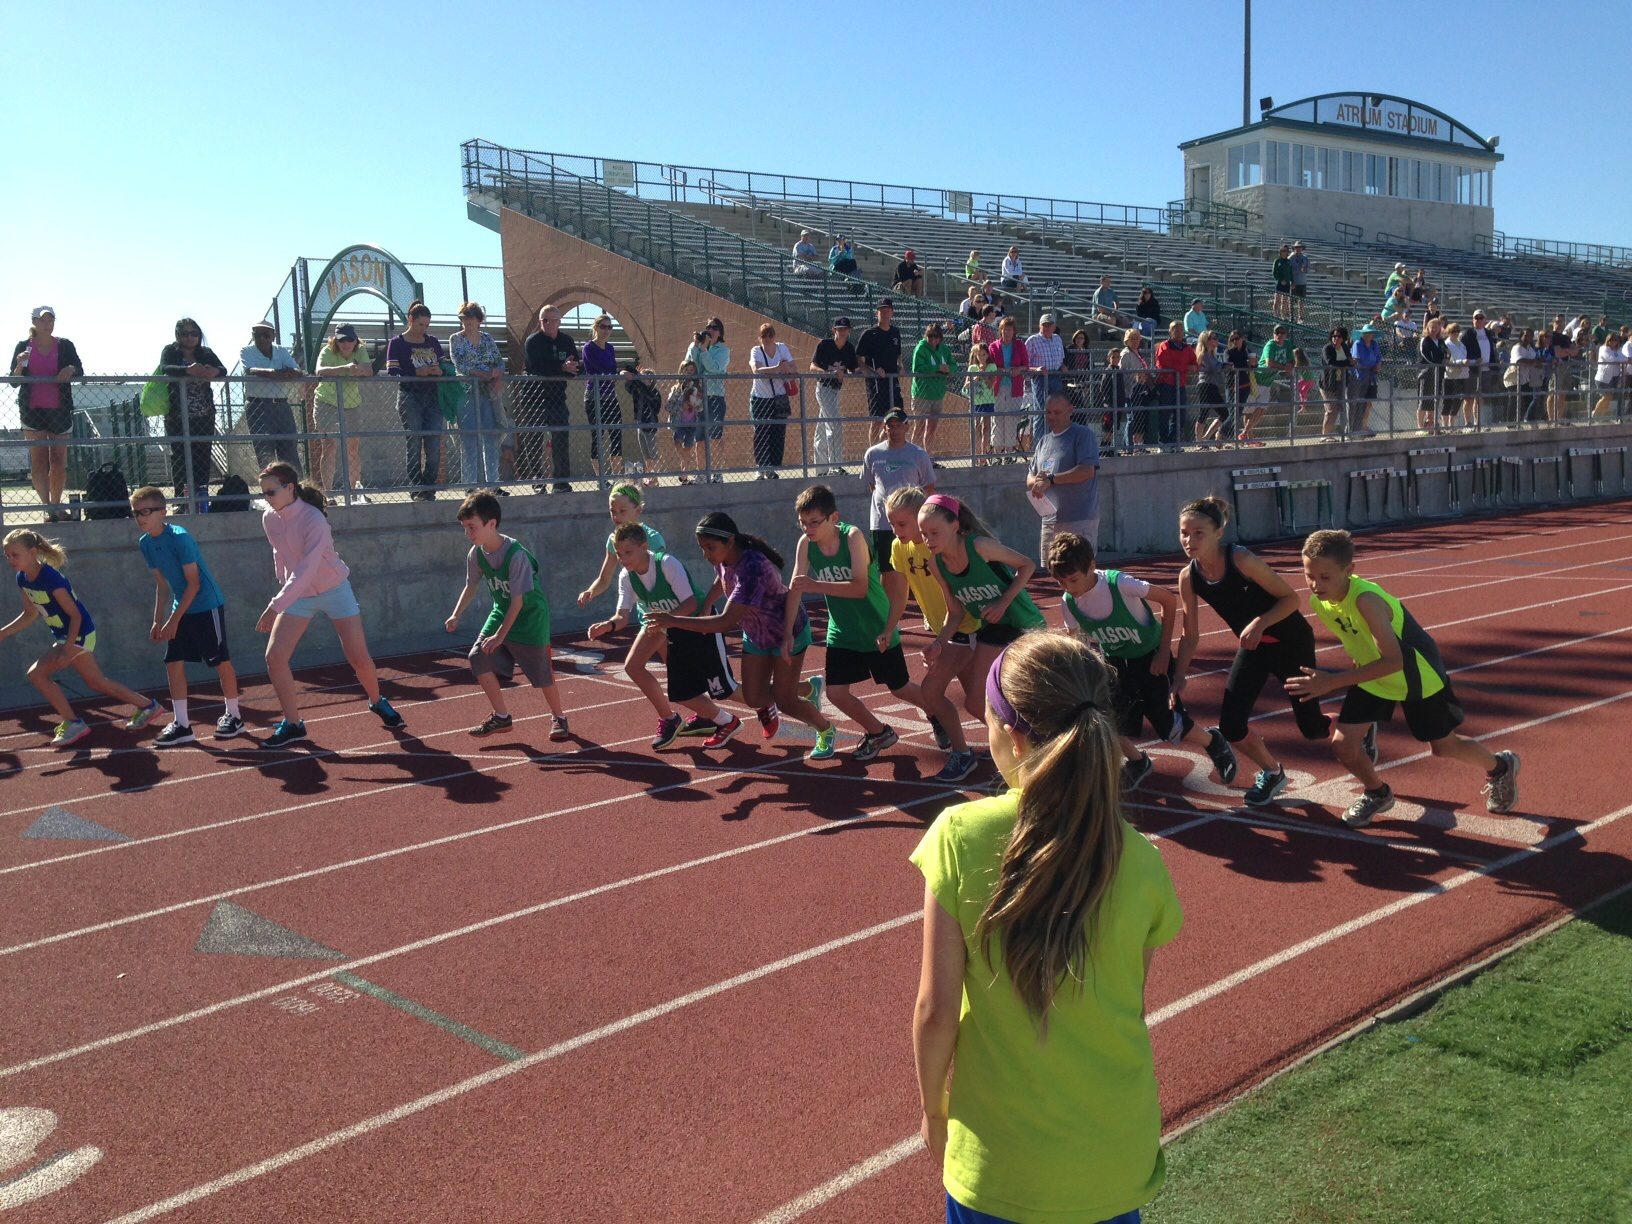 Almost 100 participants competed at Hershey's National Track and Field program local qualifier at Mason High School track on June 14.